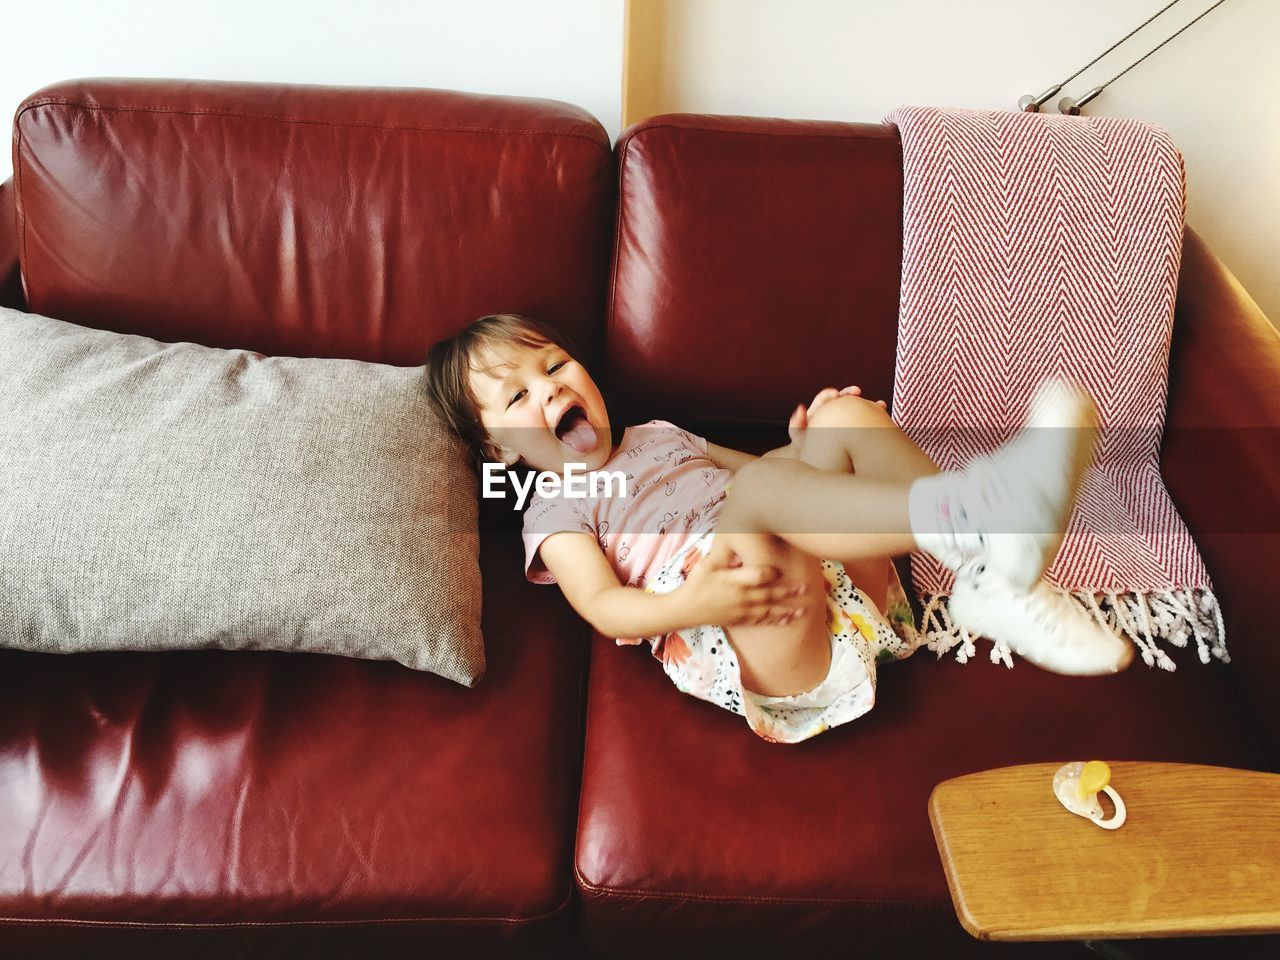 indoors, one person, relaxation, furniture, sofa, lifestyles, lying down, child, childhood, women, real people, front view, young adult, home interior, leisure activity, innocence, females, resting